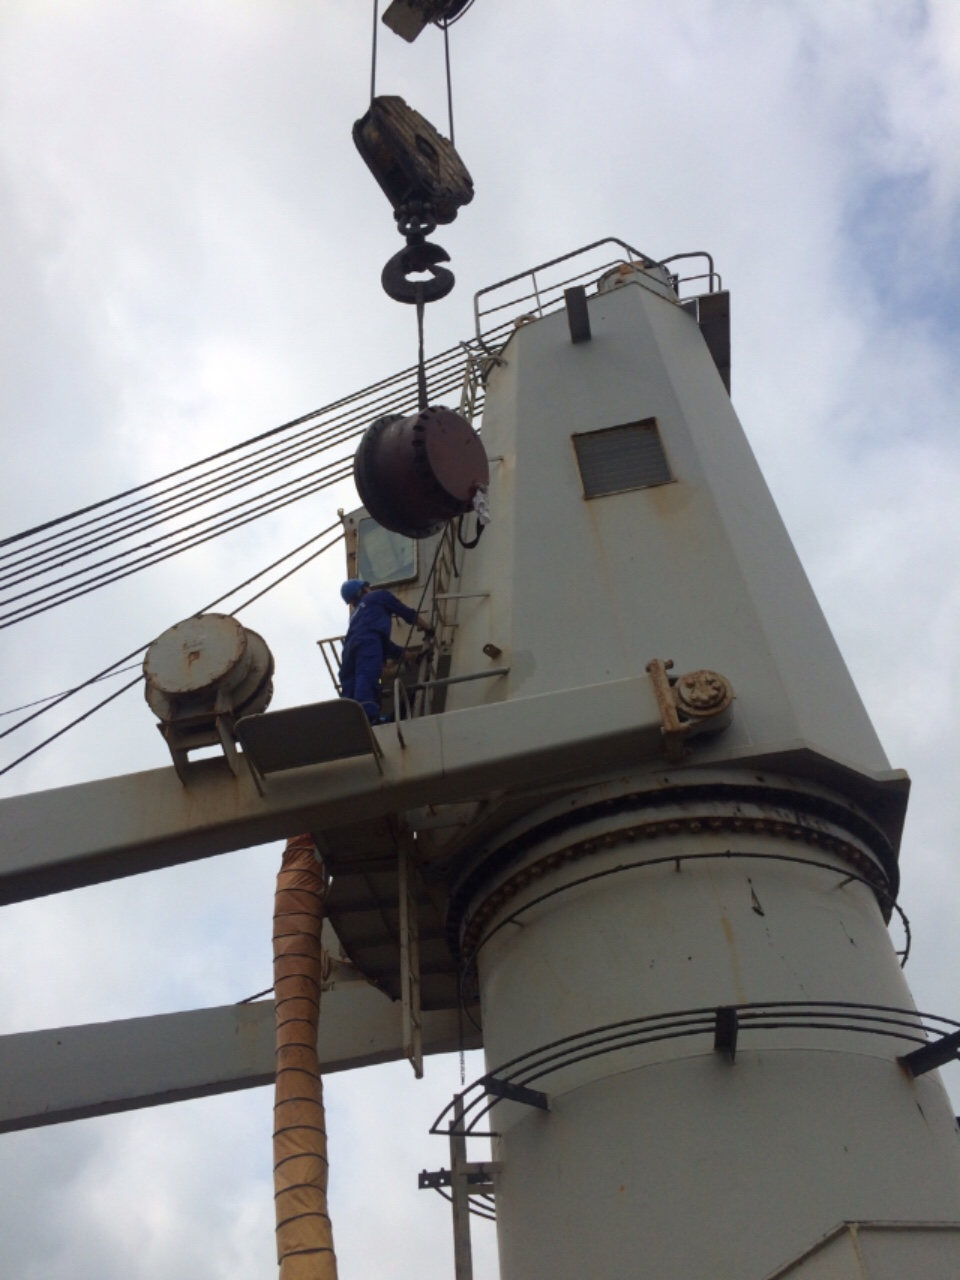 DECK CRANE REPAIR IN VIETNAM